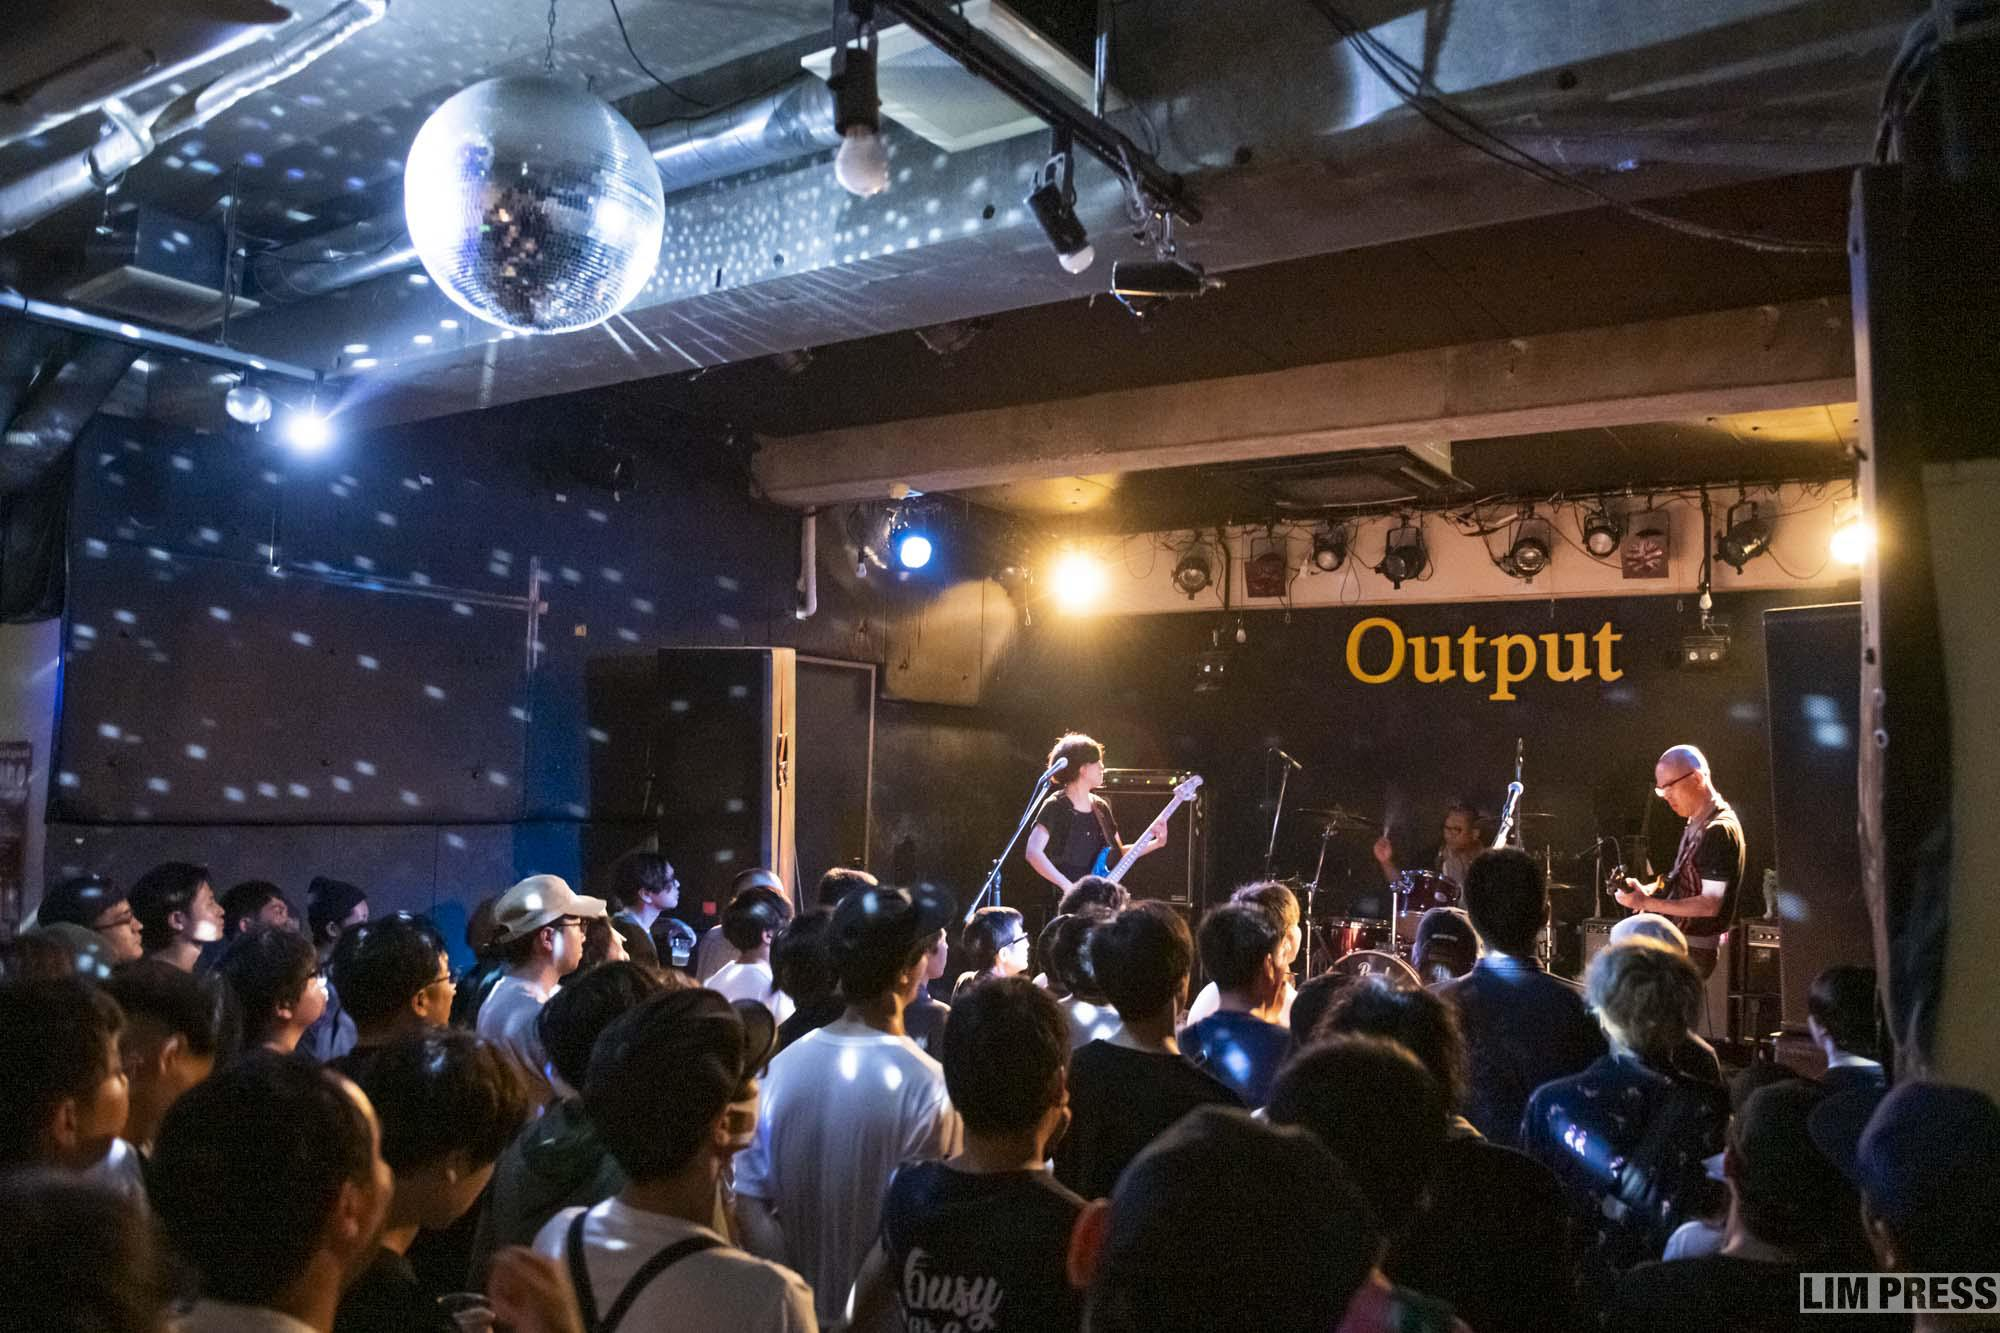 eastern youth | 沖縄 Output | 2019.05.19